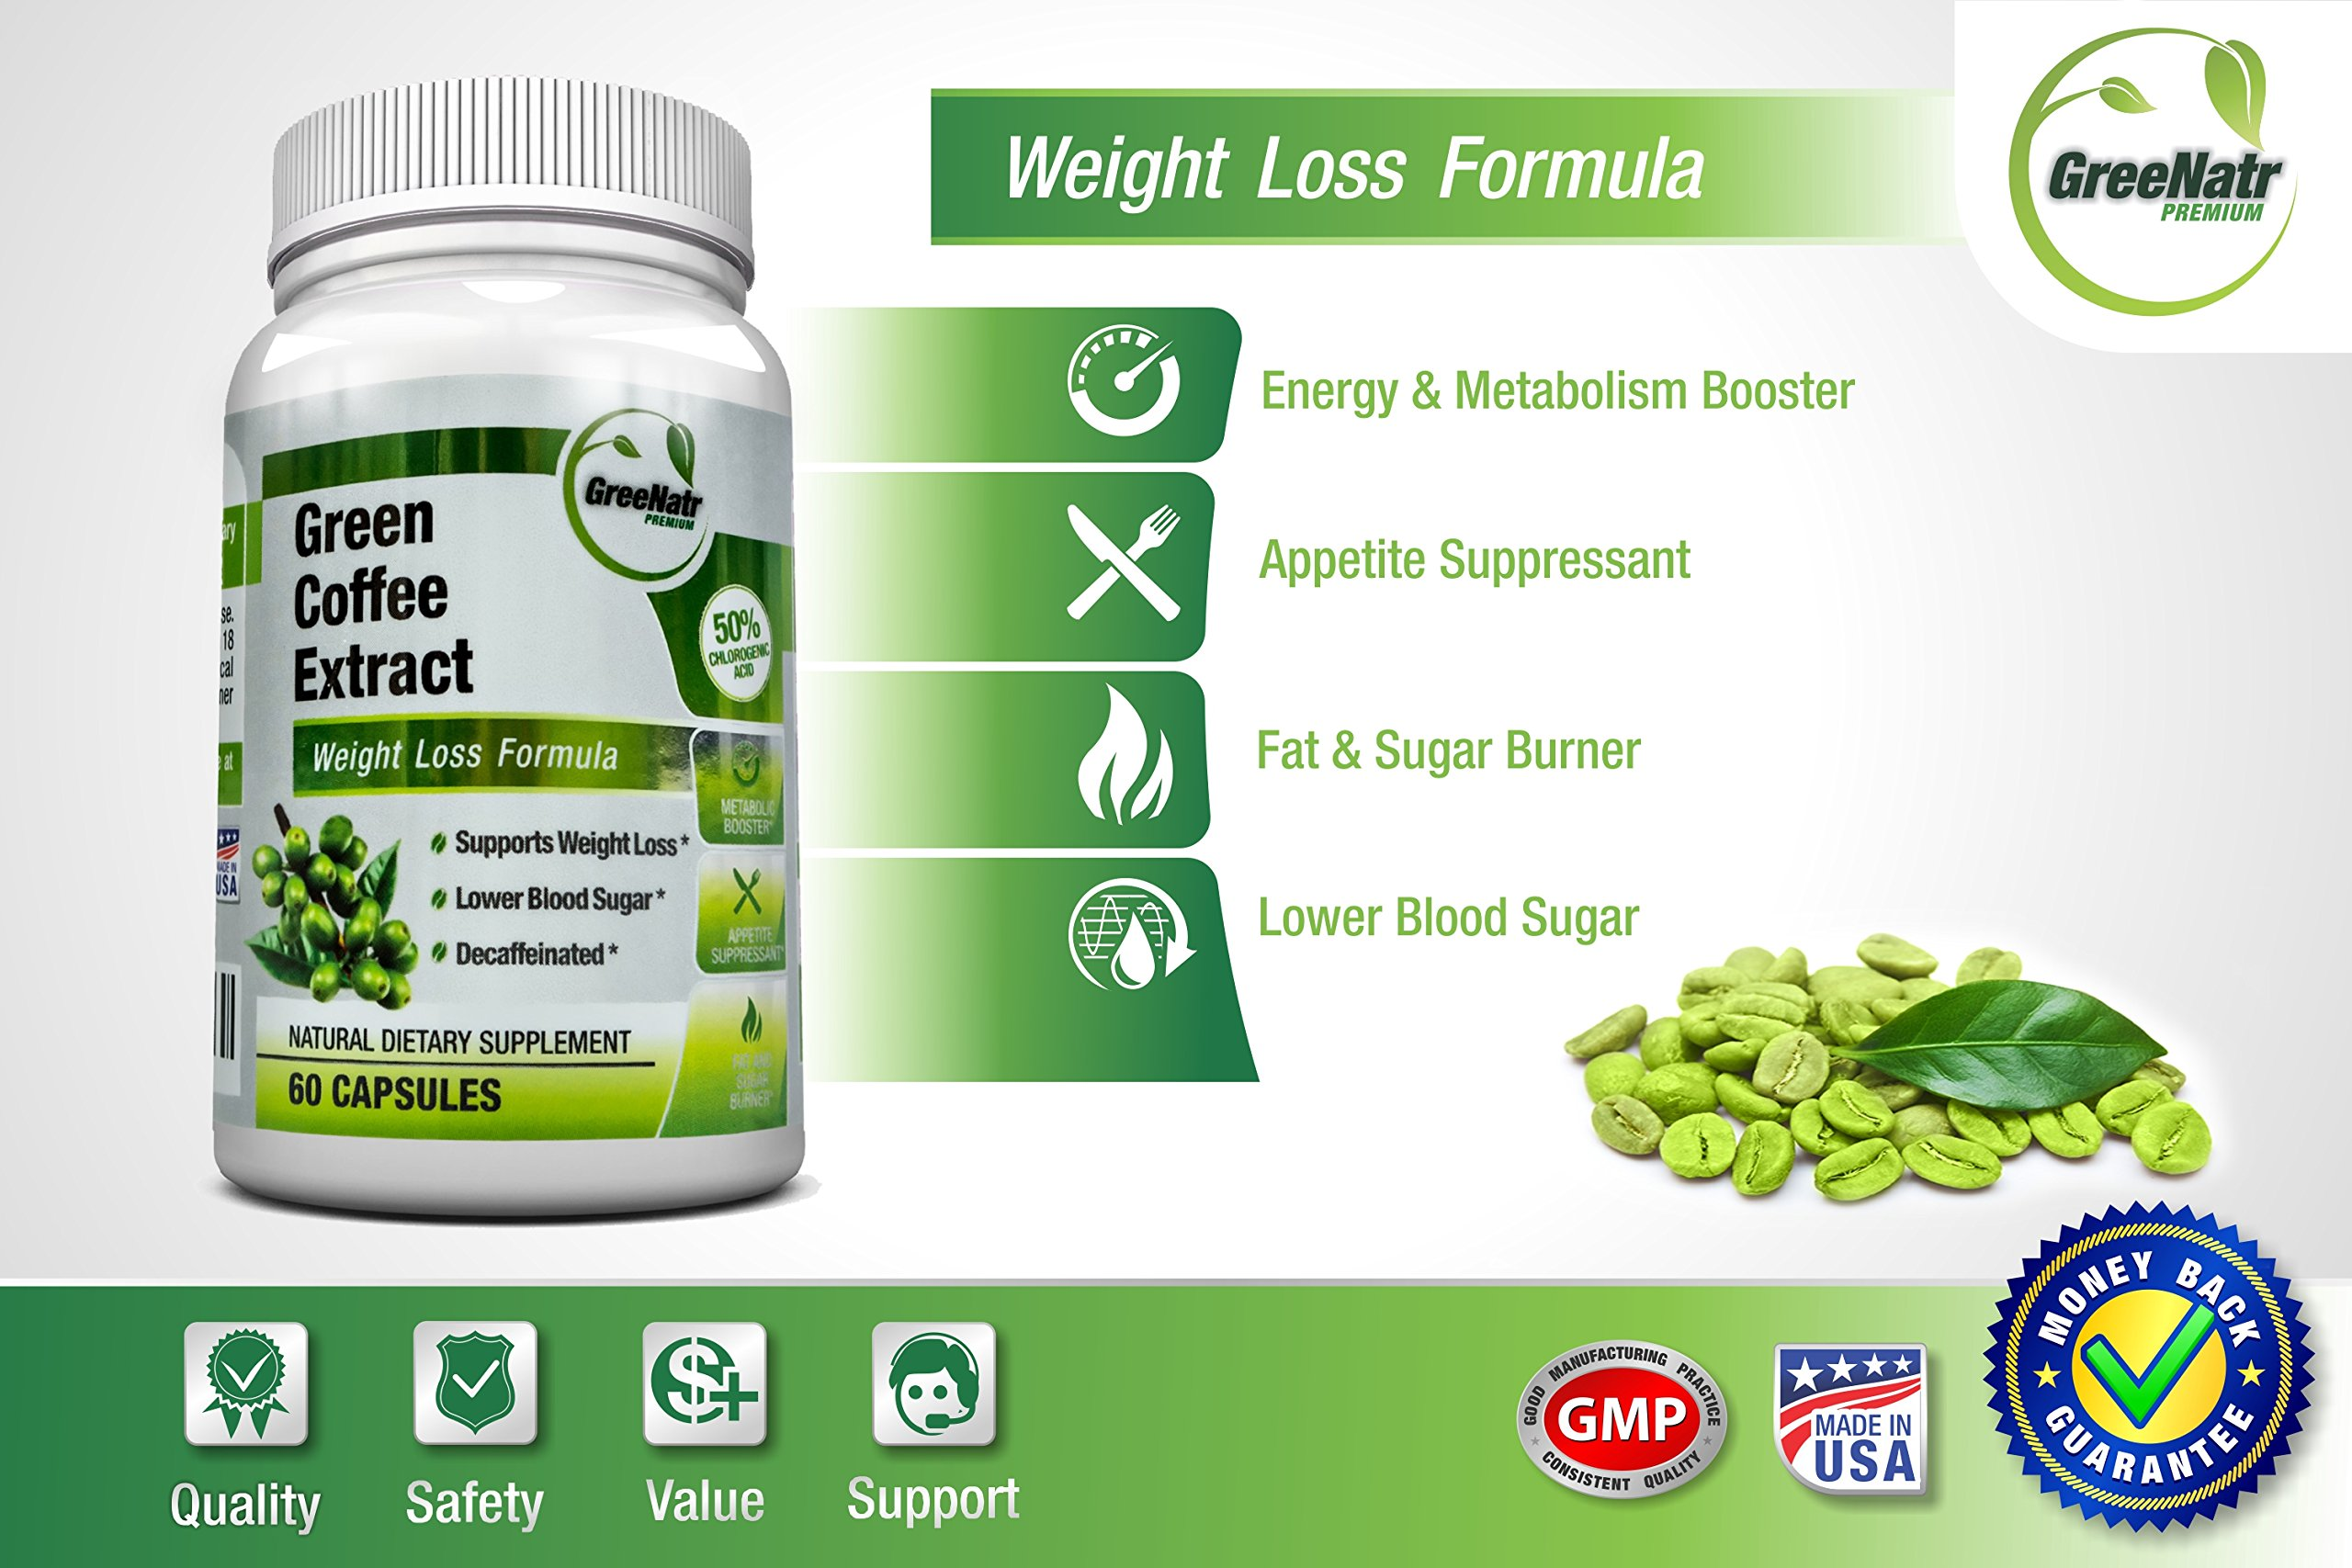 Pure Green Coffee Bean Extract + Colon Cleanse Detox Diet - Weight Loss and Detox Bundle - 480 Veggie Capsules - Gluten Free - Non GMO (6 Months Supply) by GreeNatr (Image #6)